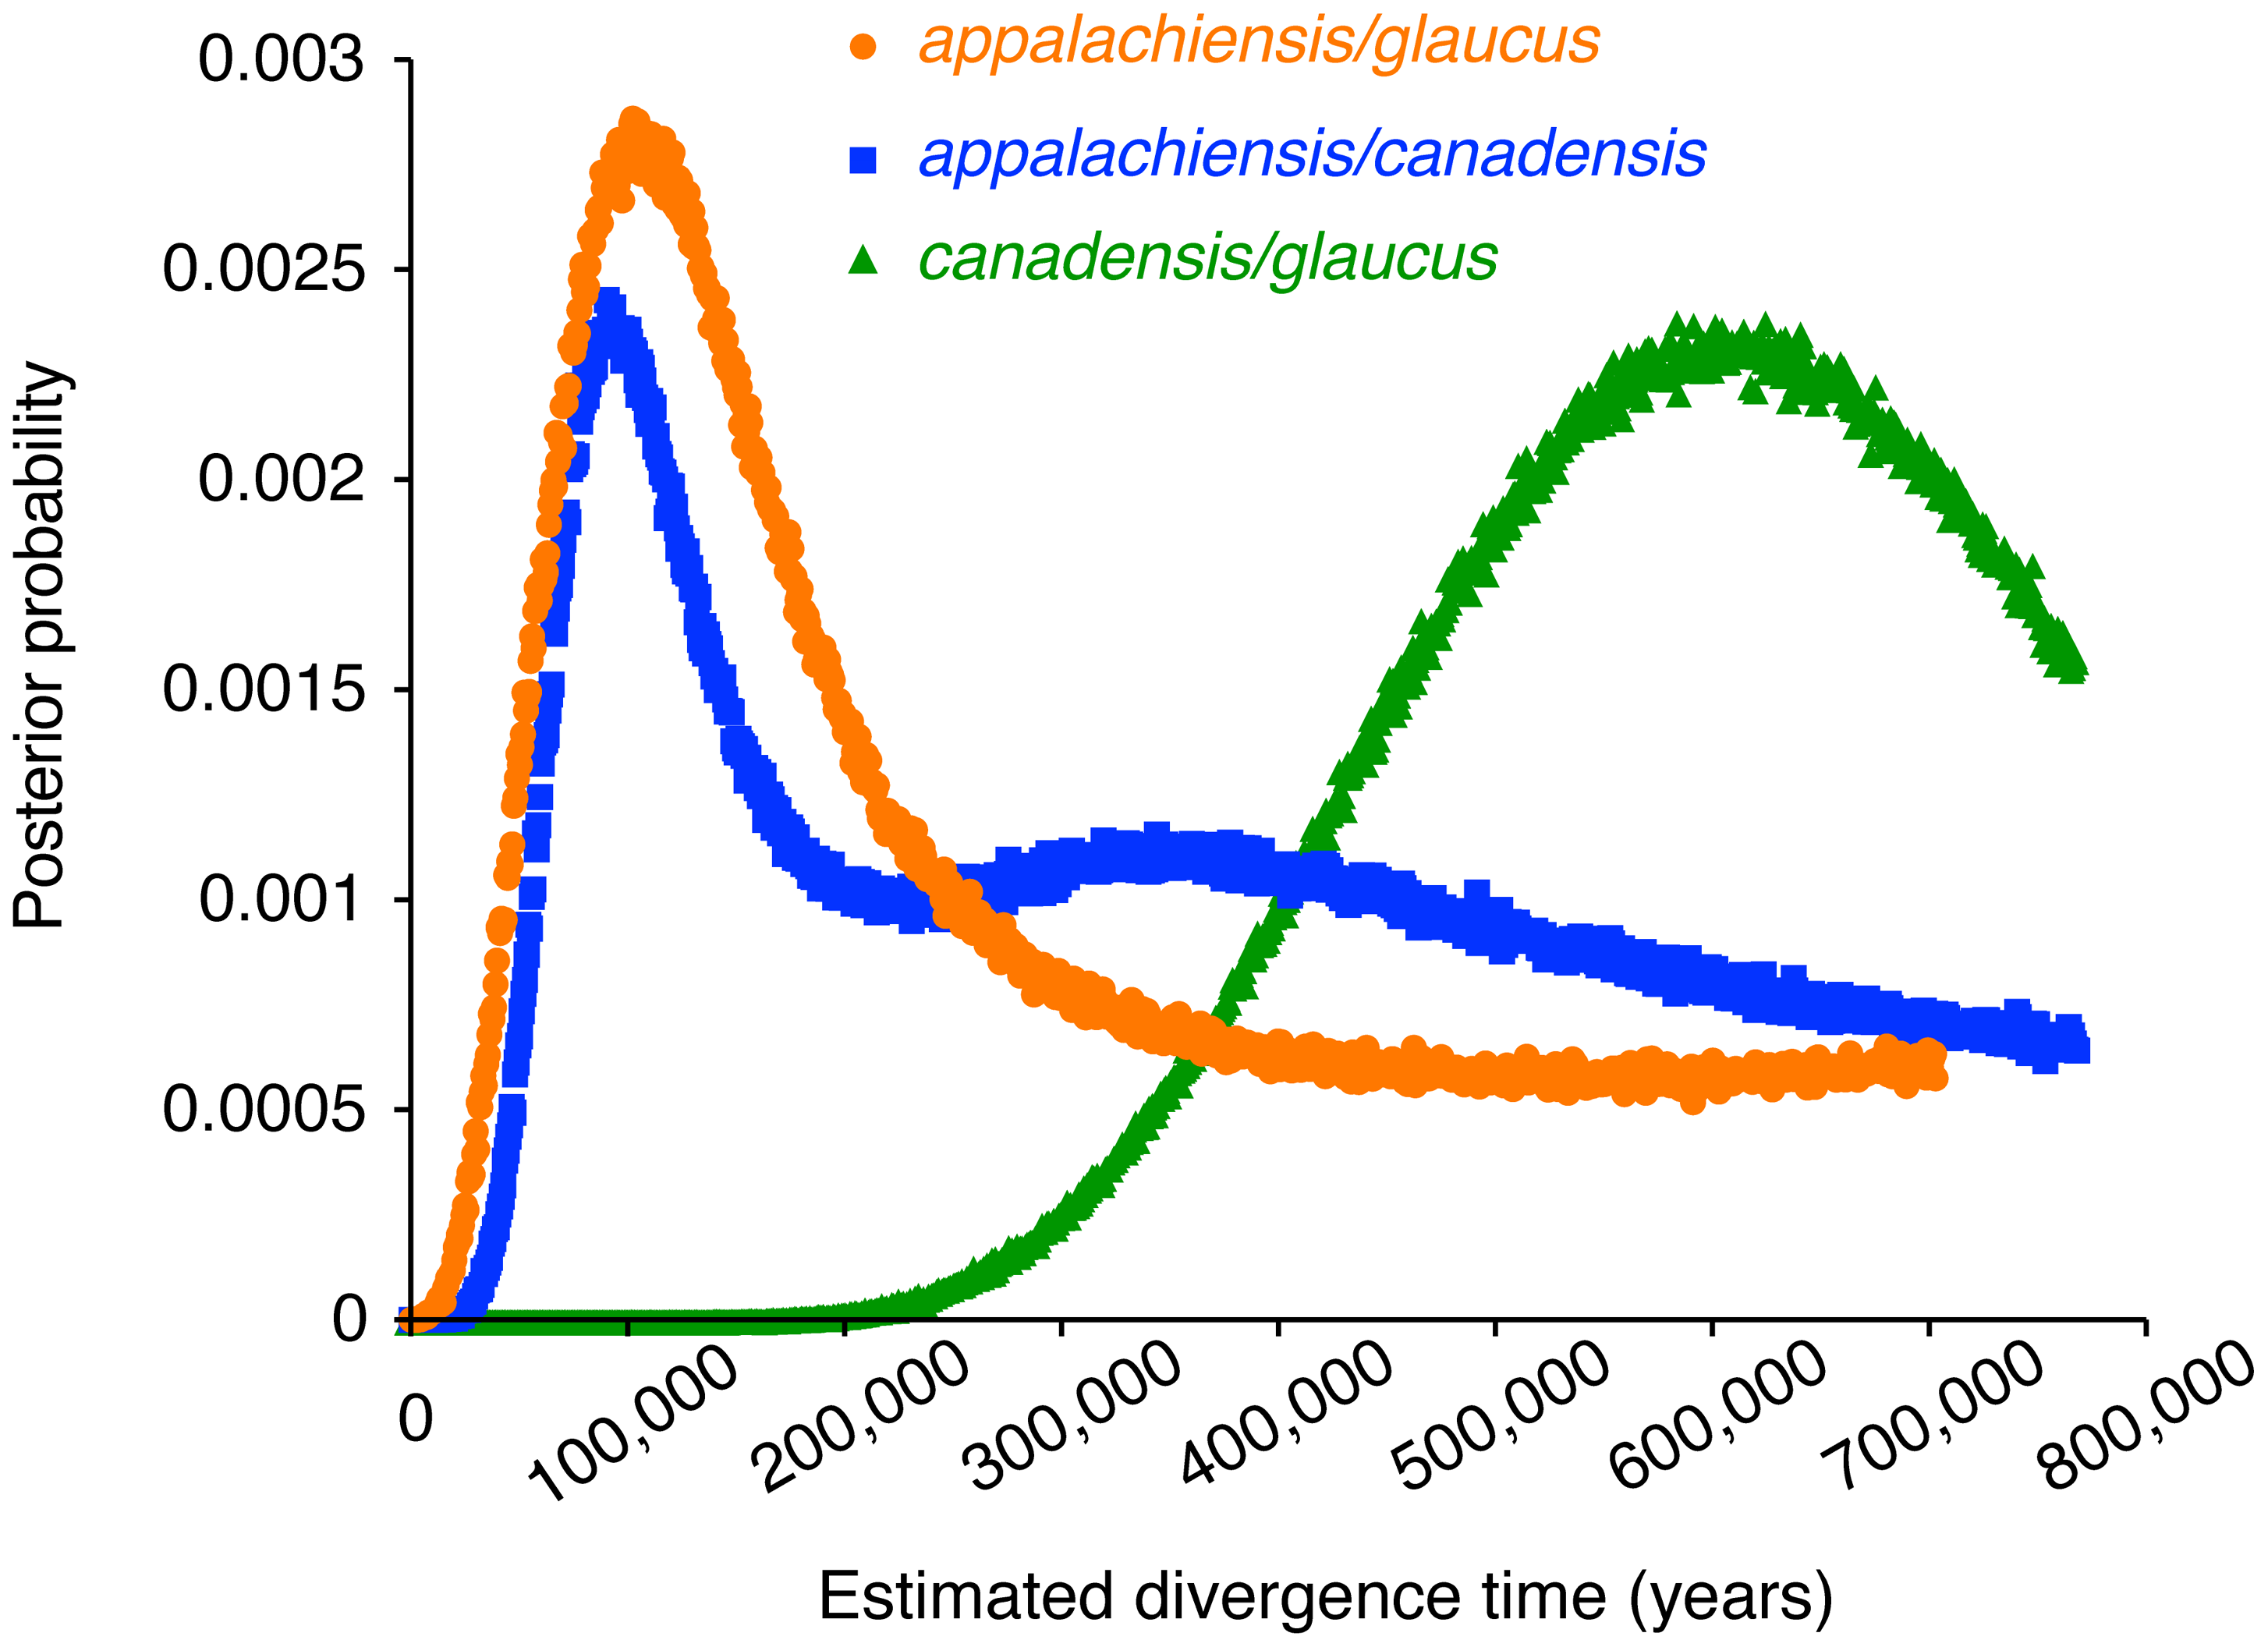 Estimated divergence times between the parental <i>glaucus</i> and <i>canadensis</i> and the hybrid <i>appalachiensis</i>.